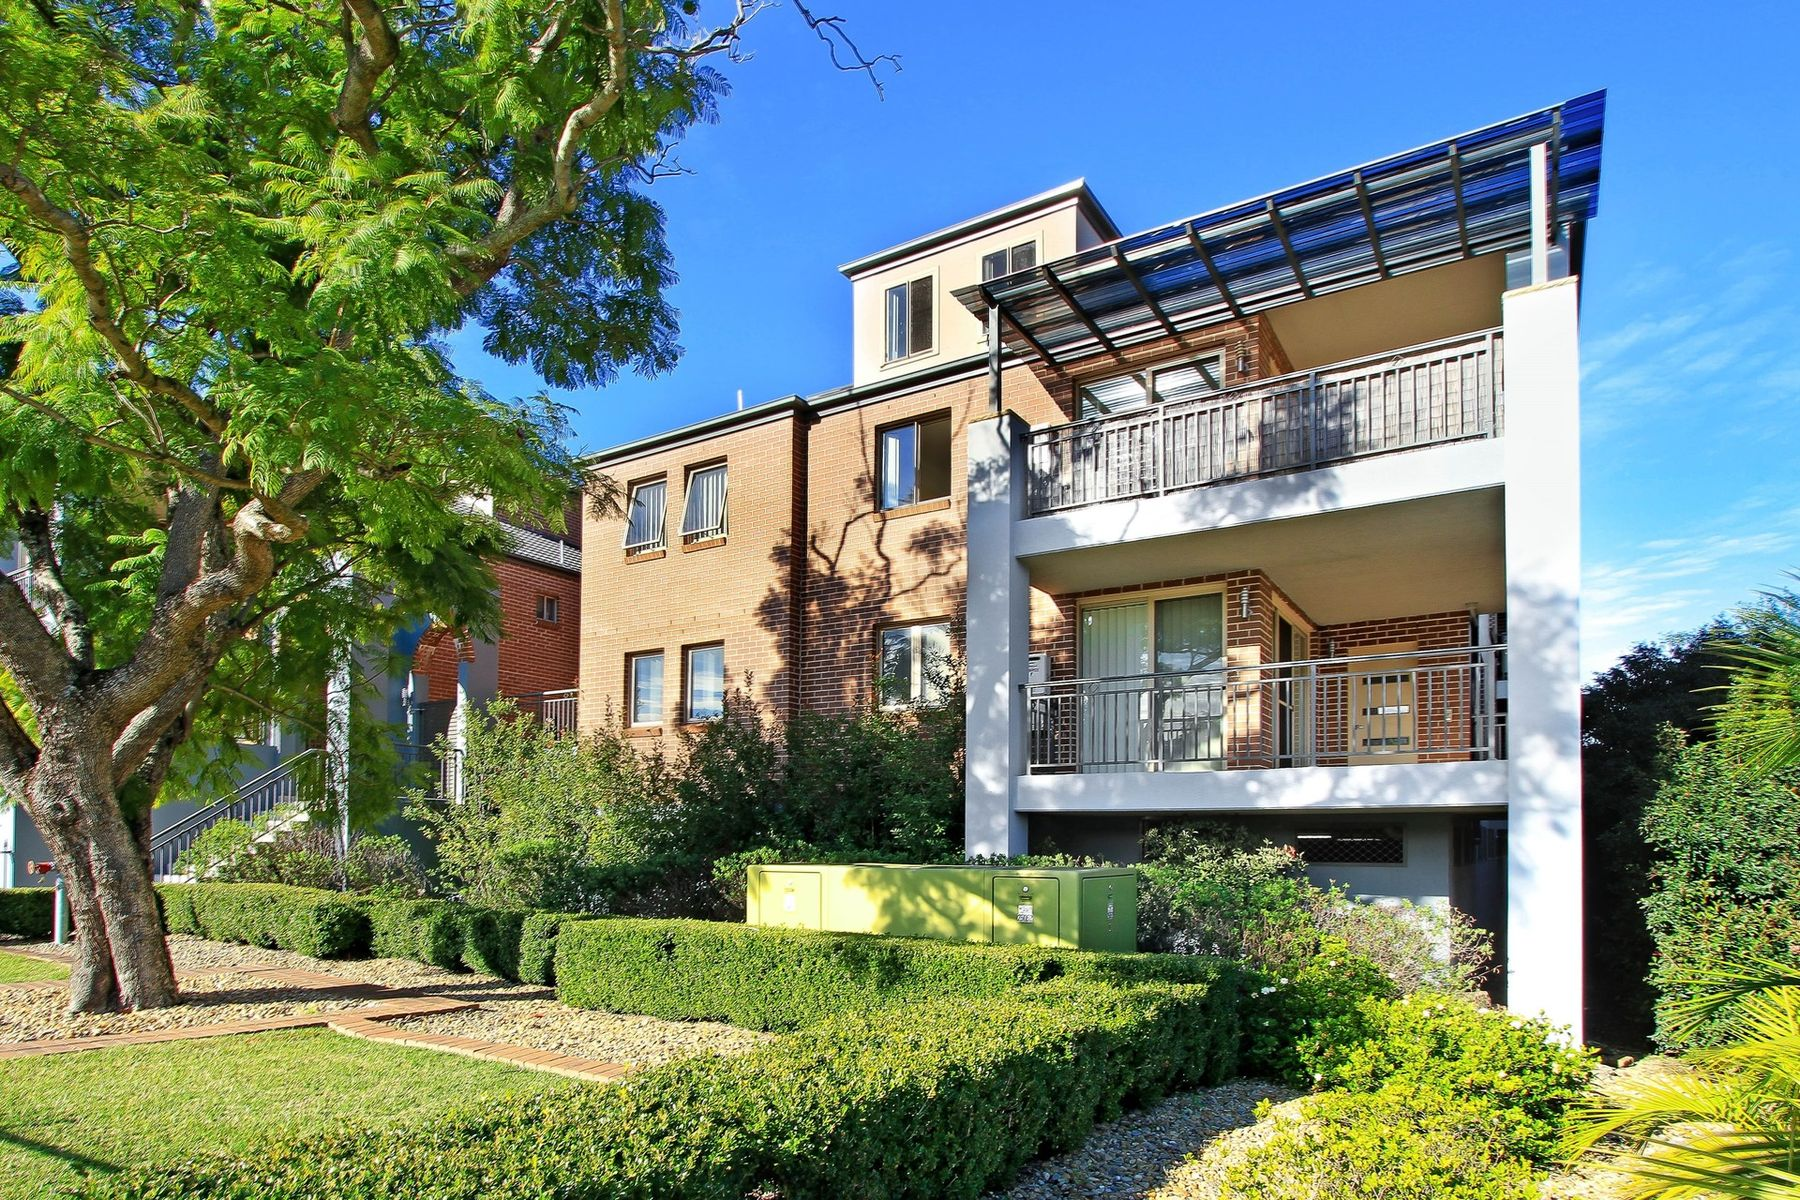 18/5-7 Princes Highway, Figtree, NSW 2525